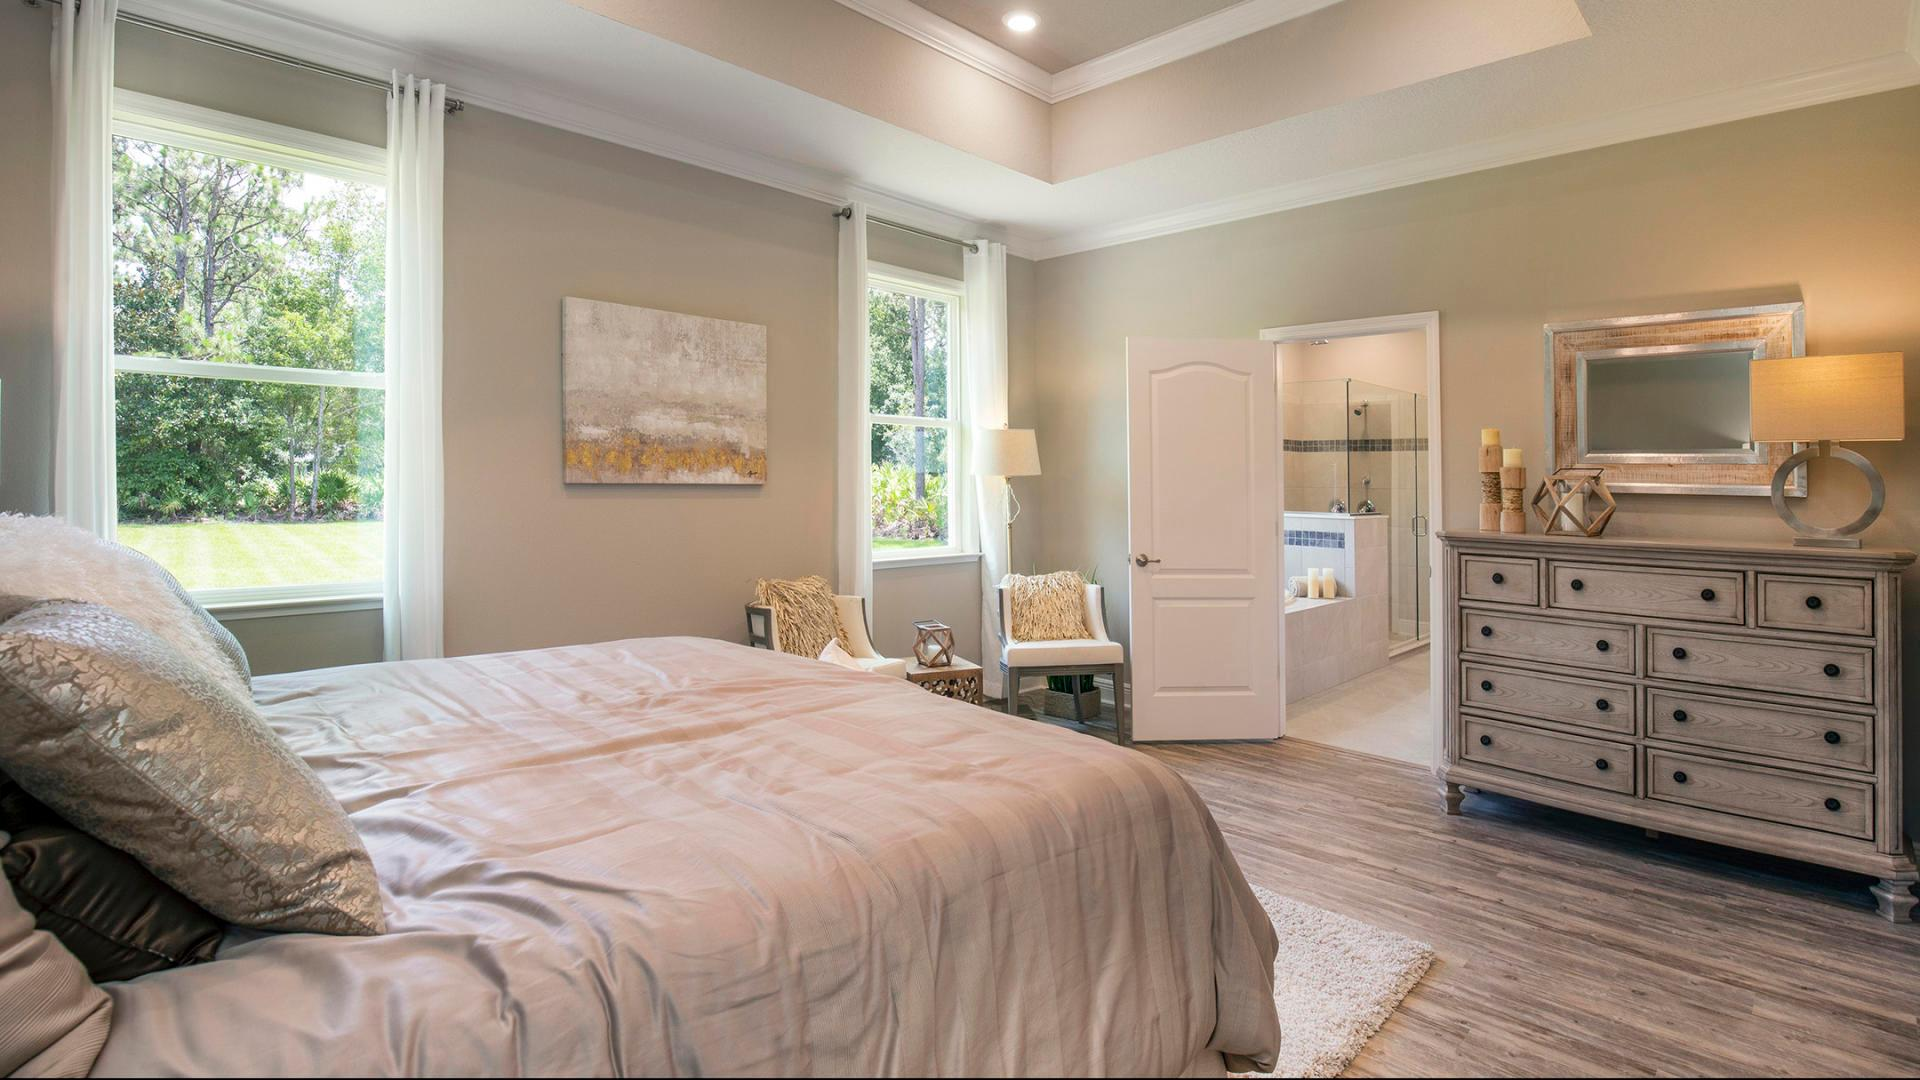 Bedroom featured in the Sienna By Maronda Homes in Daytona Beach, FL